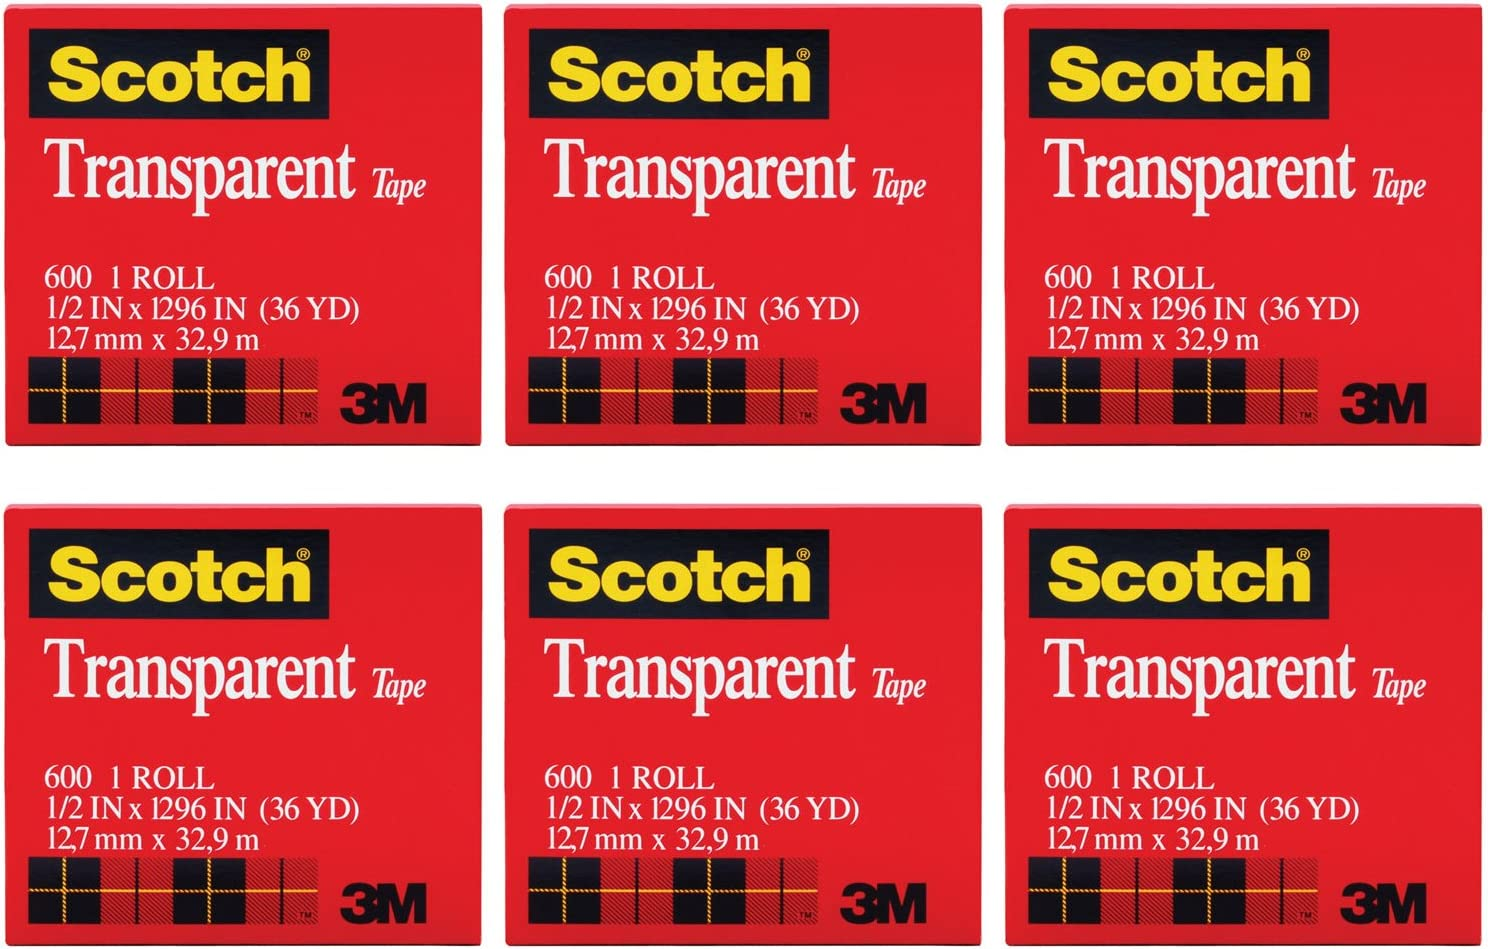 Scotch Premium Transparent Film Tape, Clear, 1/2 Inch x 36 Yards (600), 6 Packs